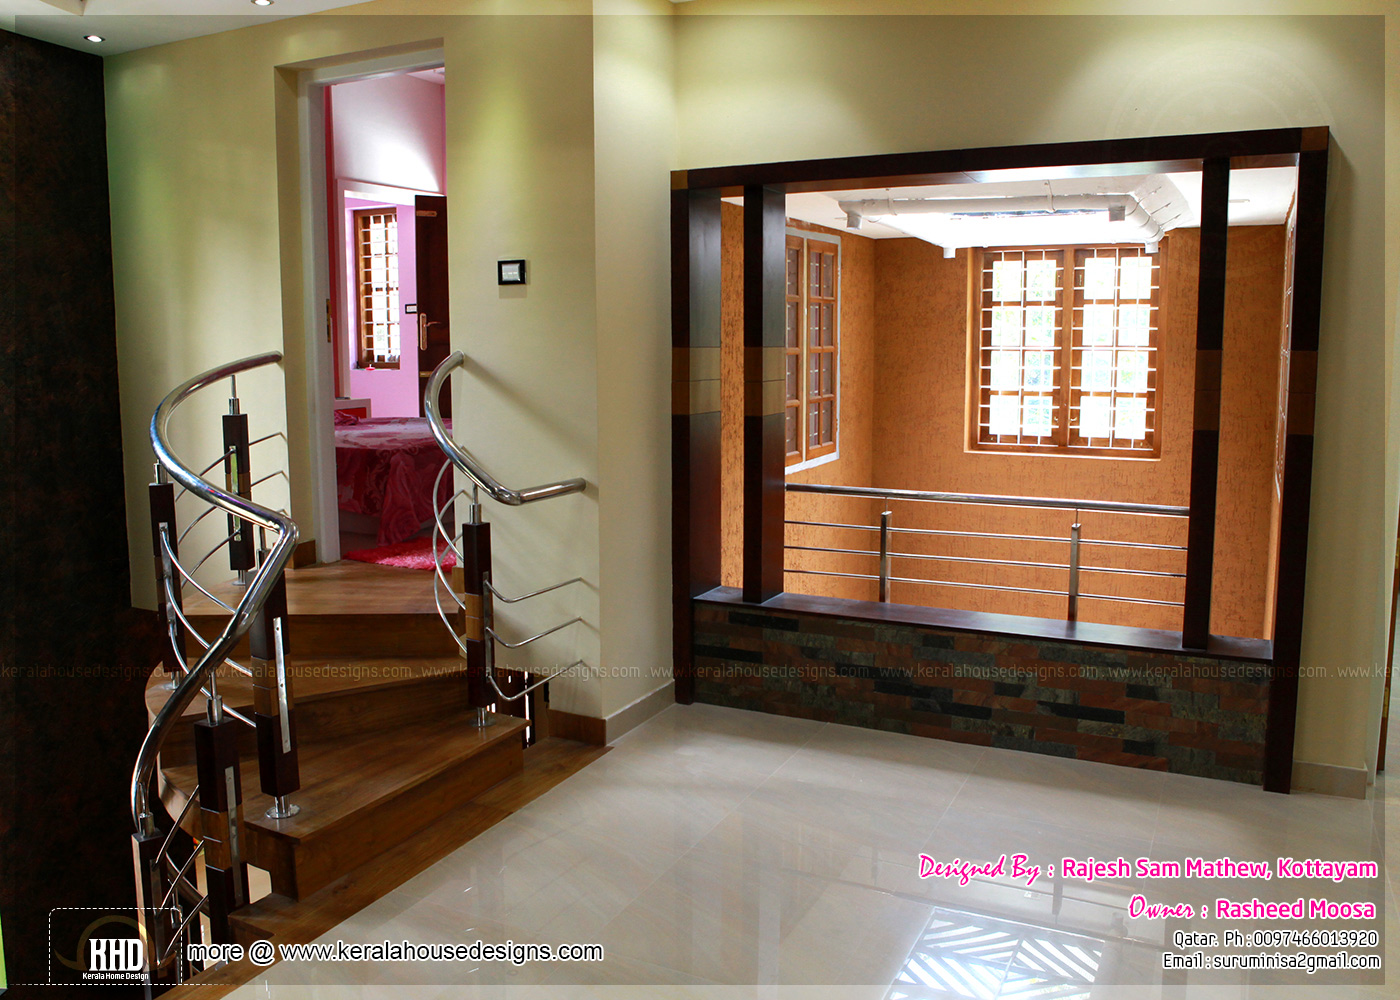 Kerala interior design with photos kerala home design for House designs interior photos